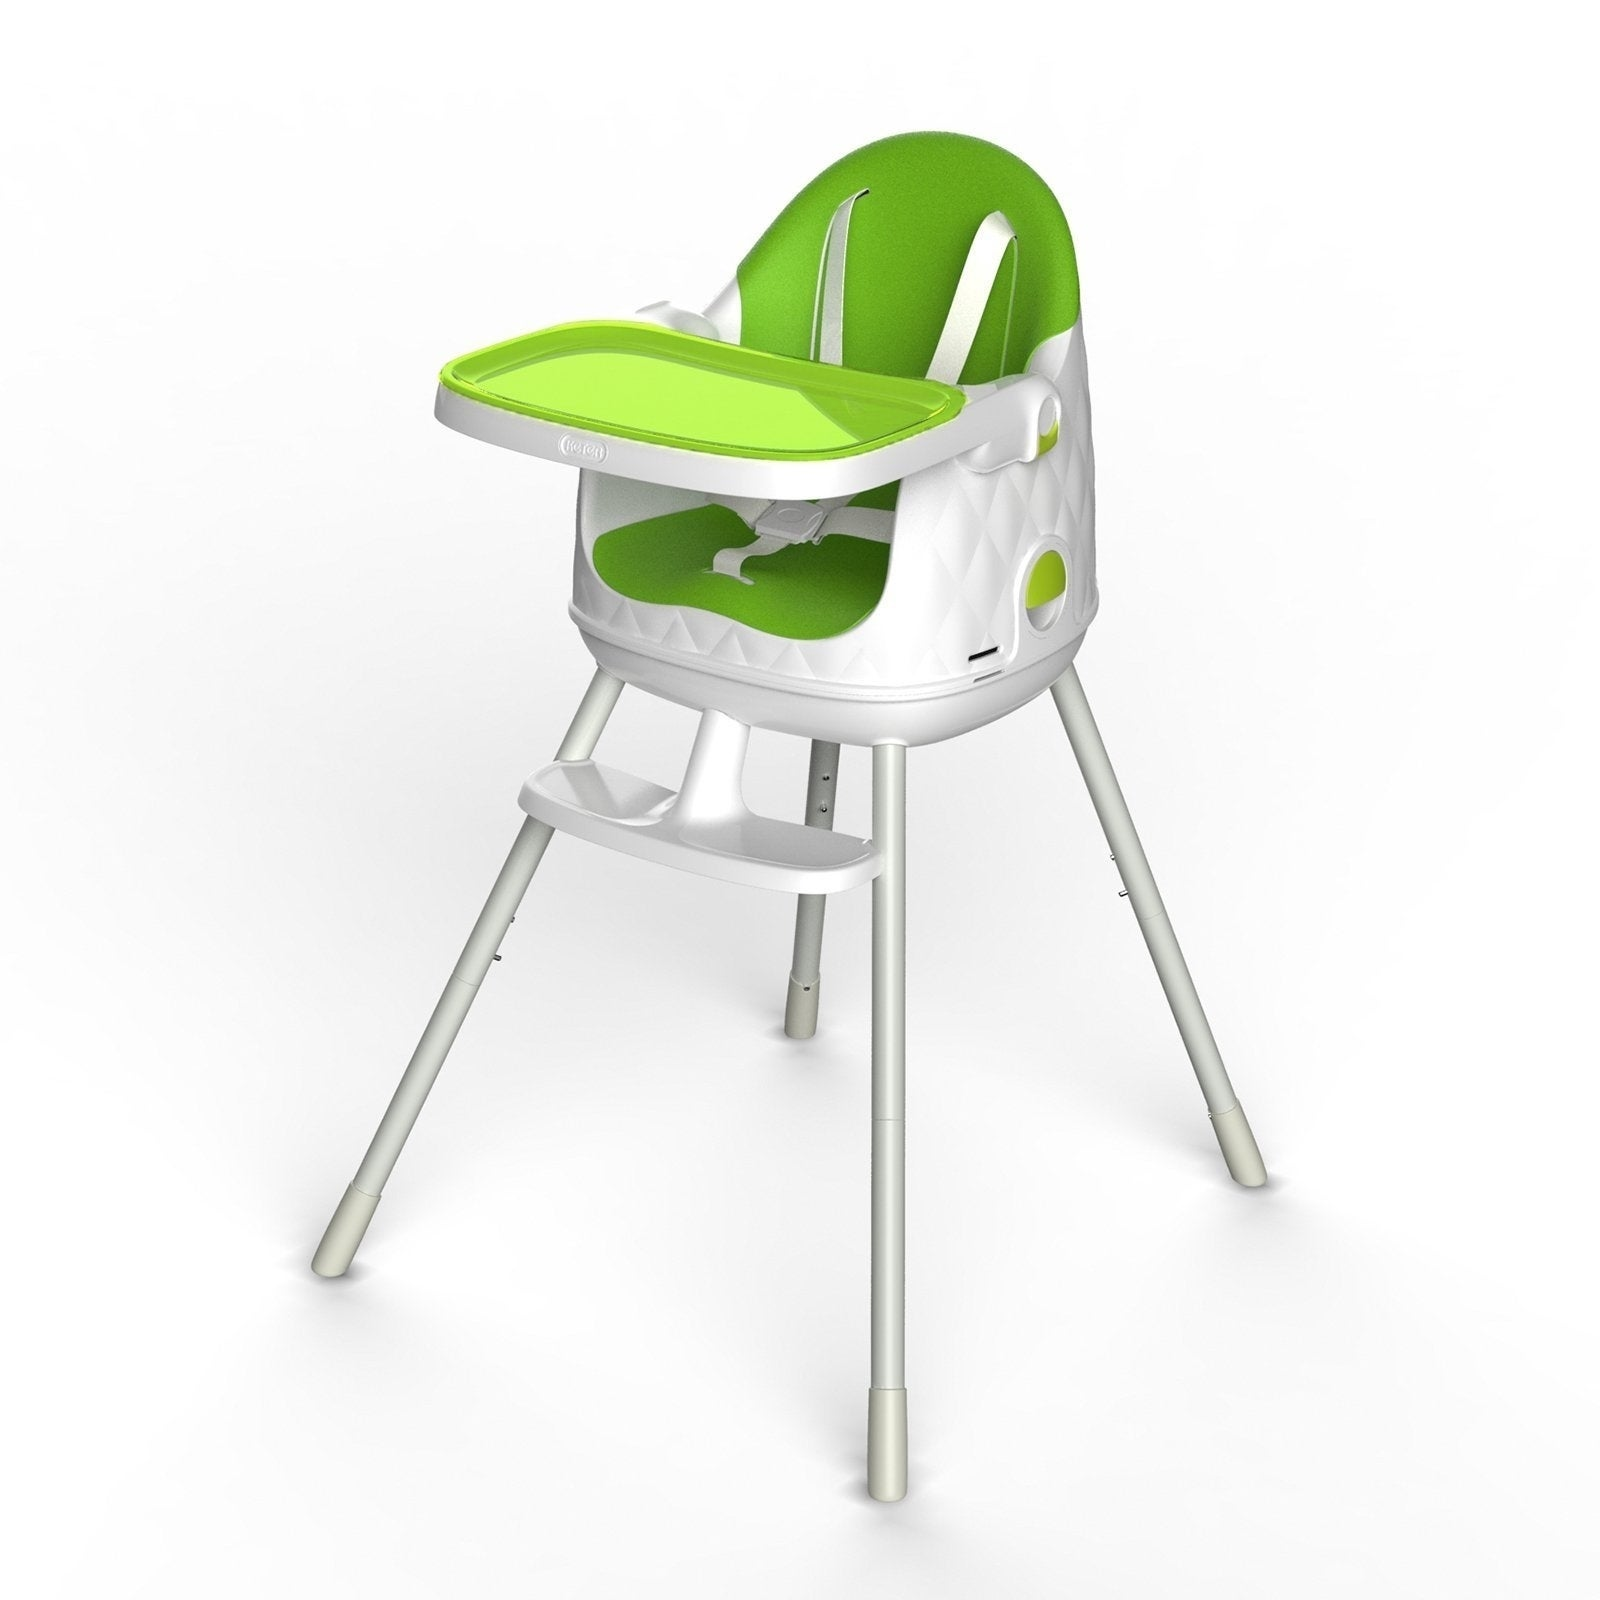 Keter Multi Dine 3 Stage Portable Folding High Chair Free